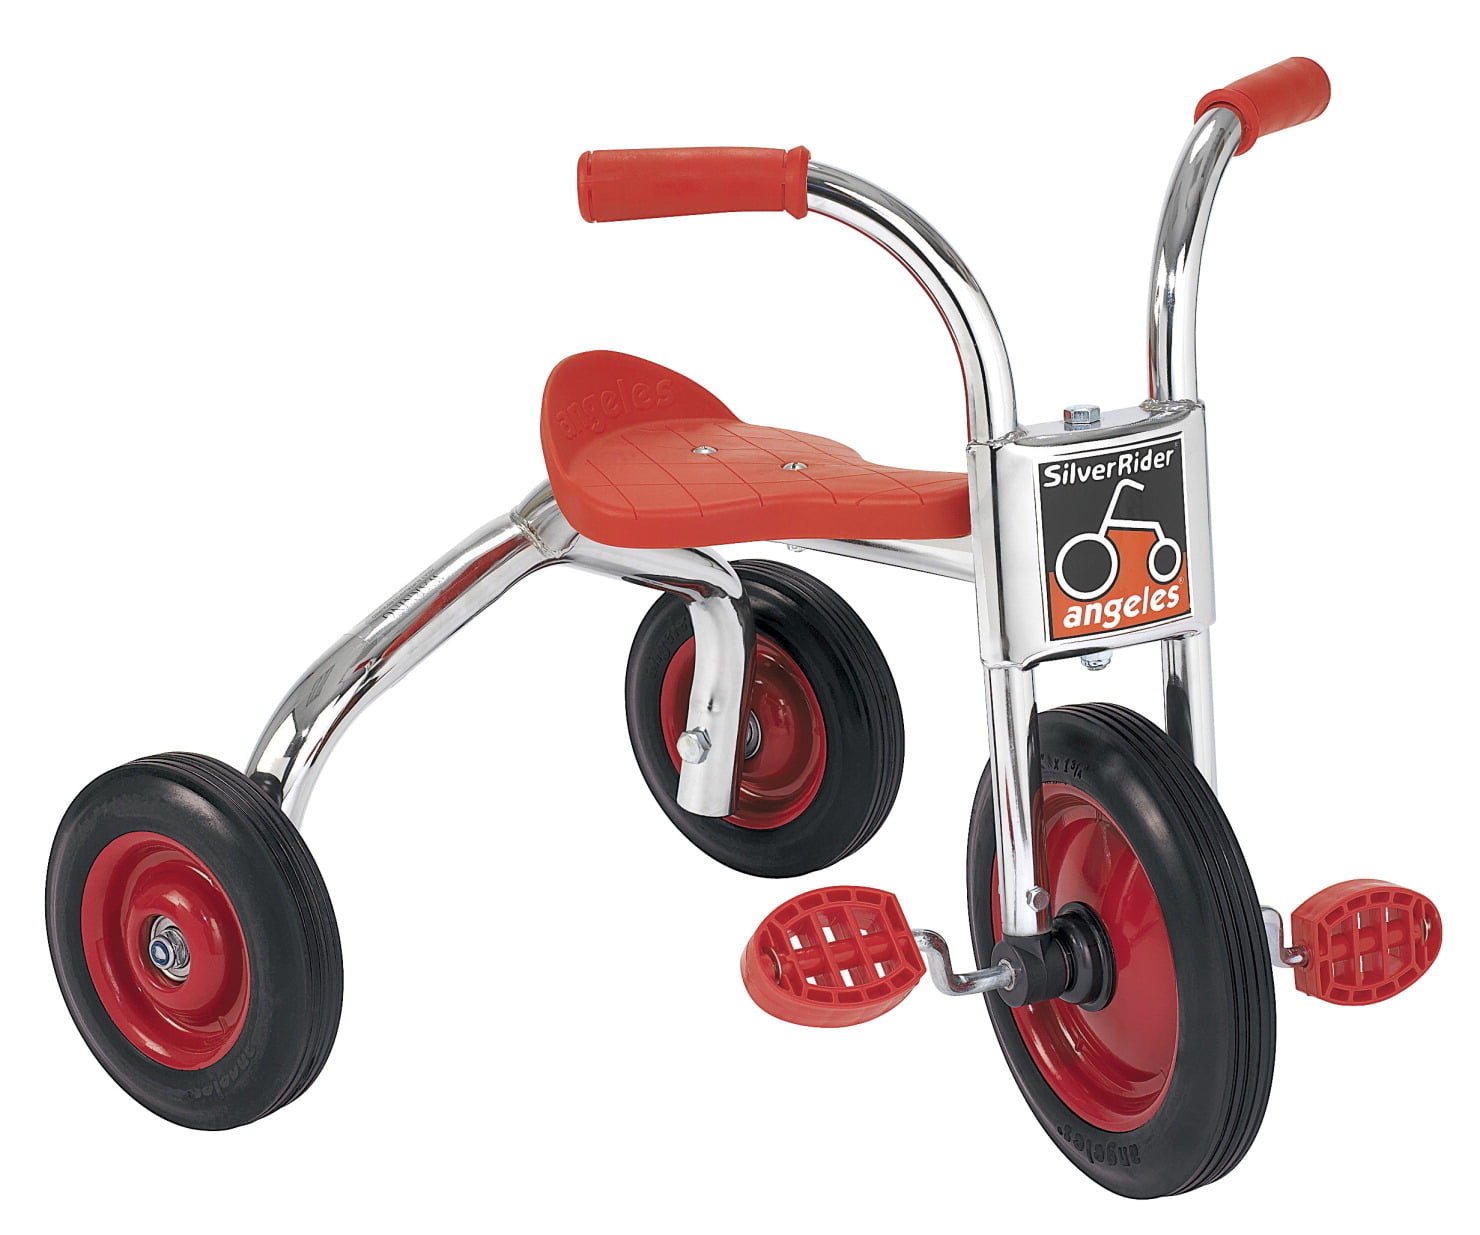 Angeles Silverrider Trike Ages 18 To 24 Months